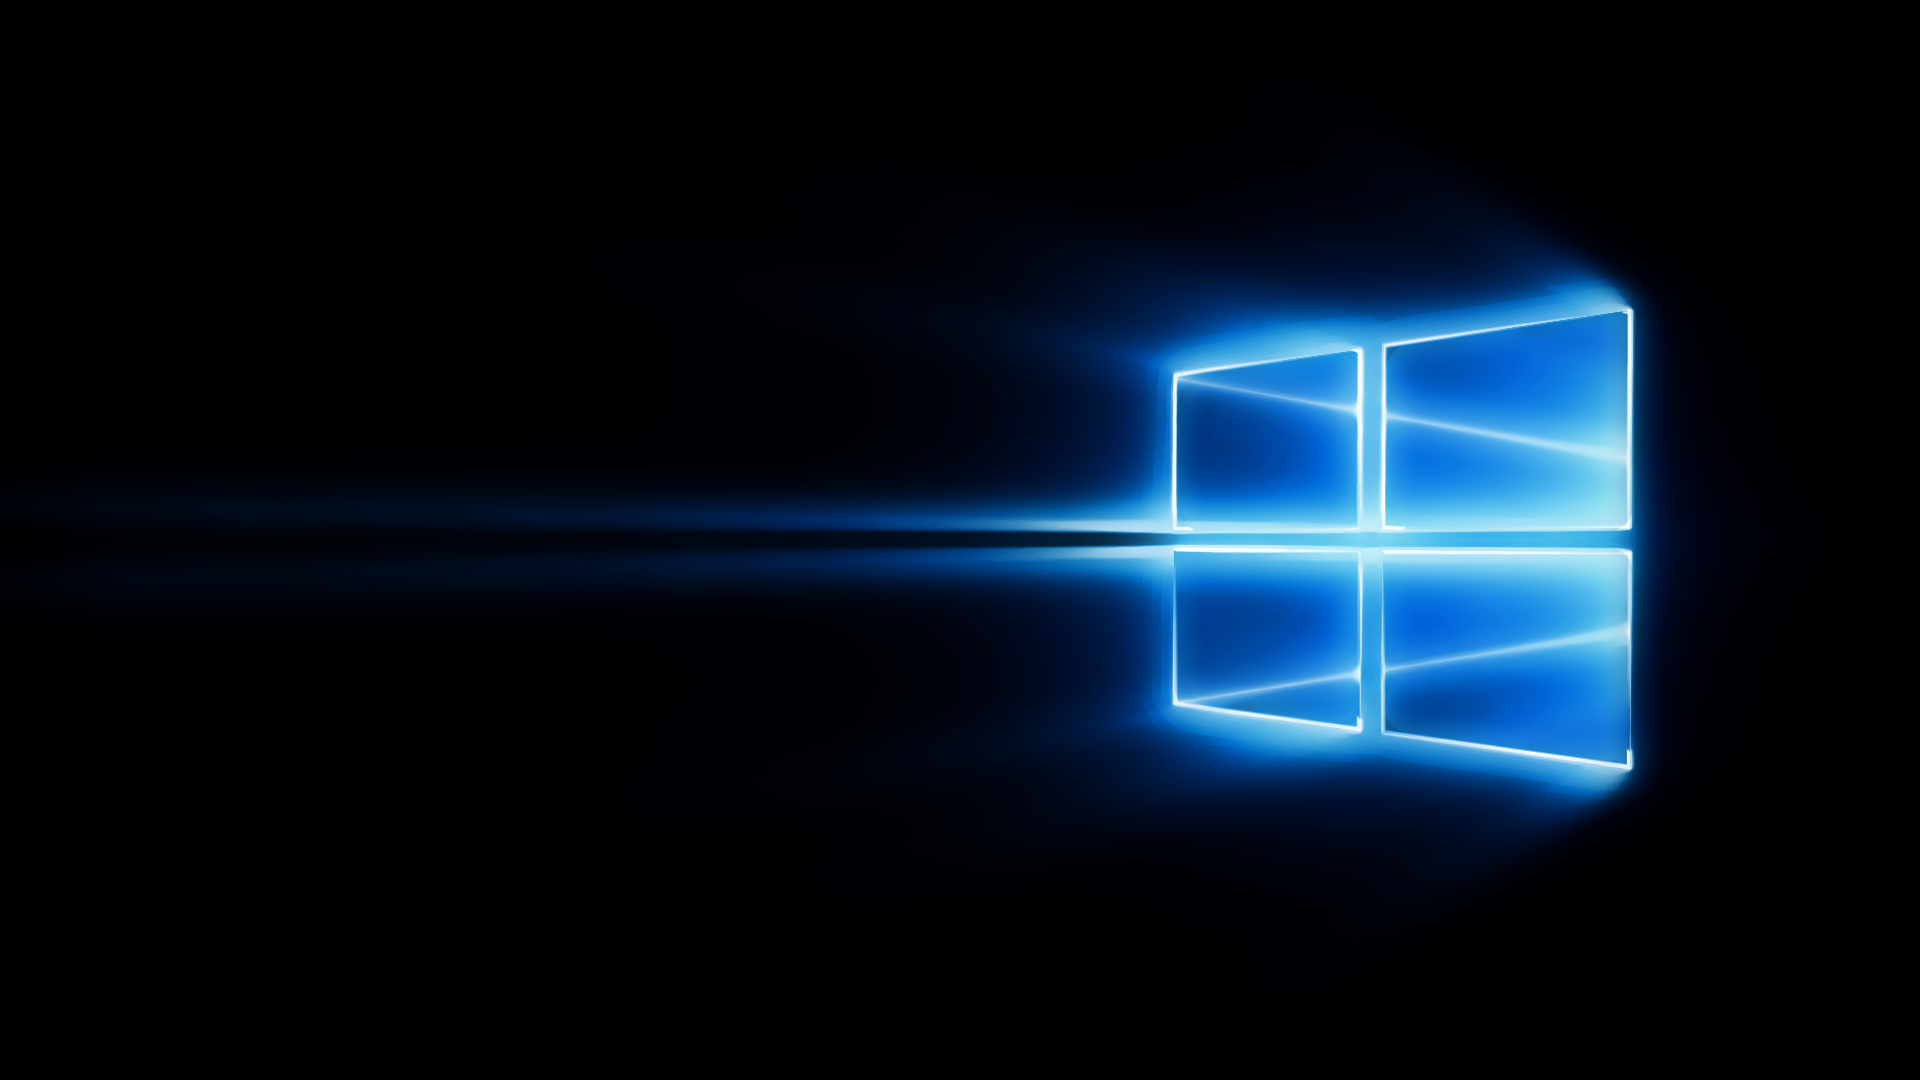 1920x1080px windows 10 wallpaper - wallpapersafari